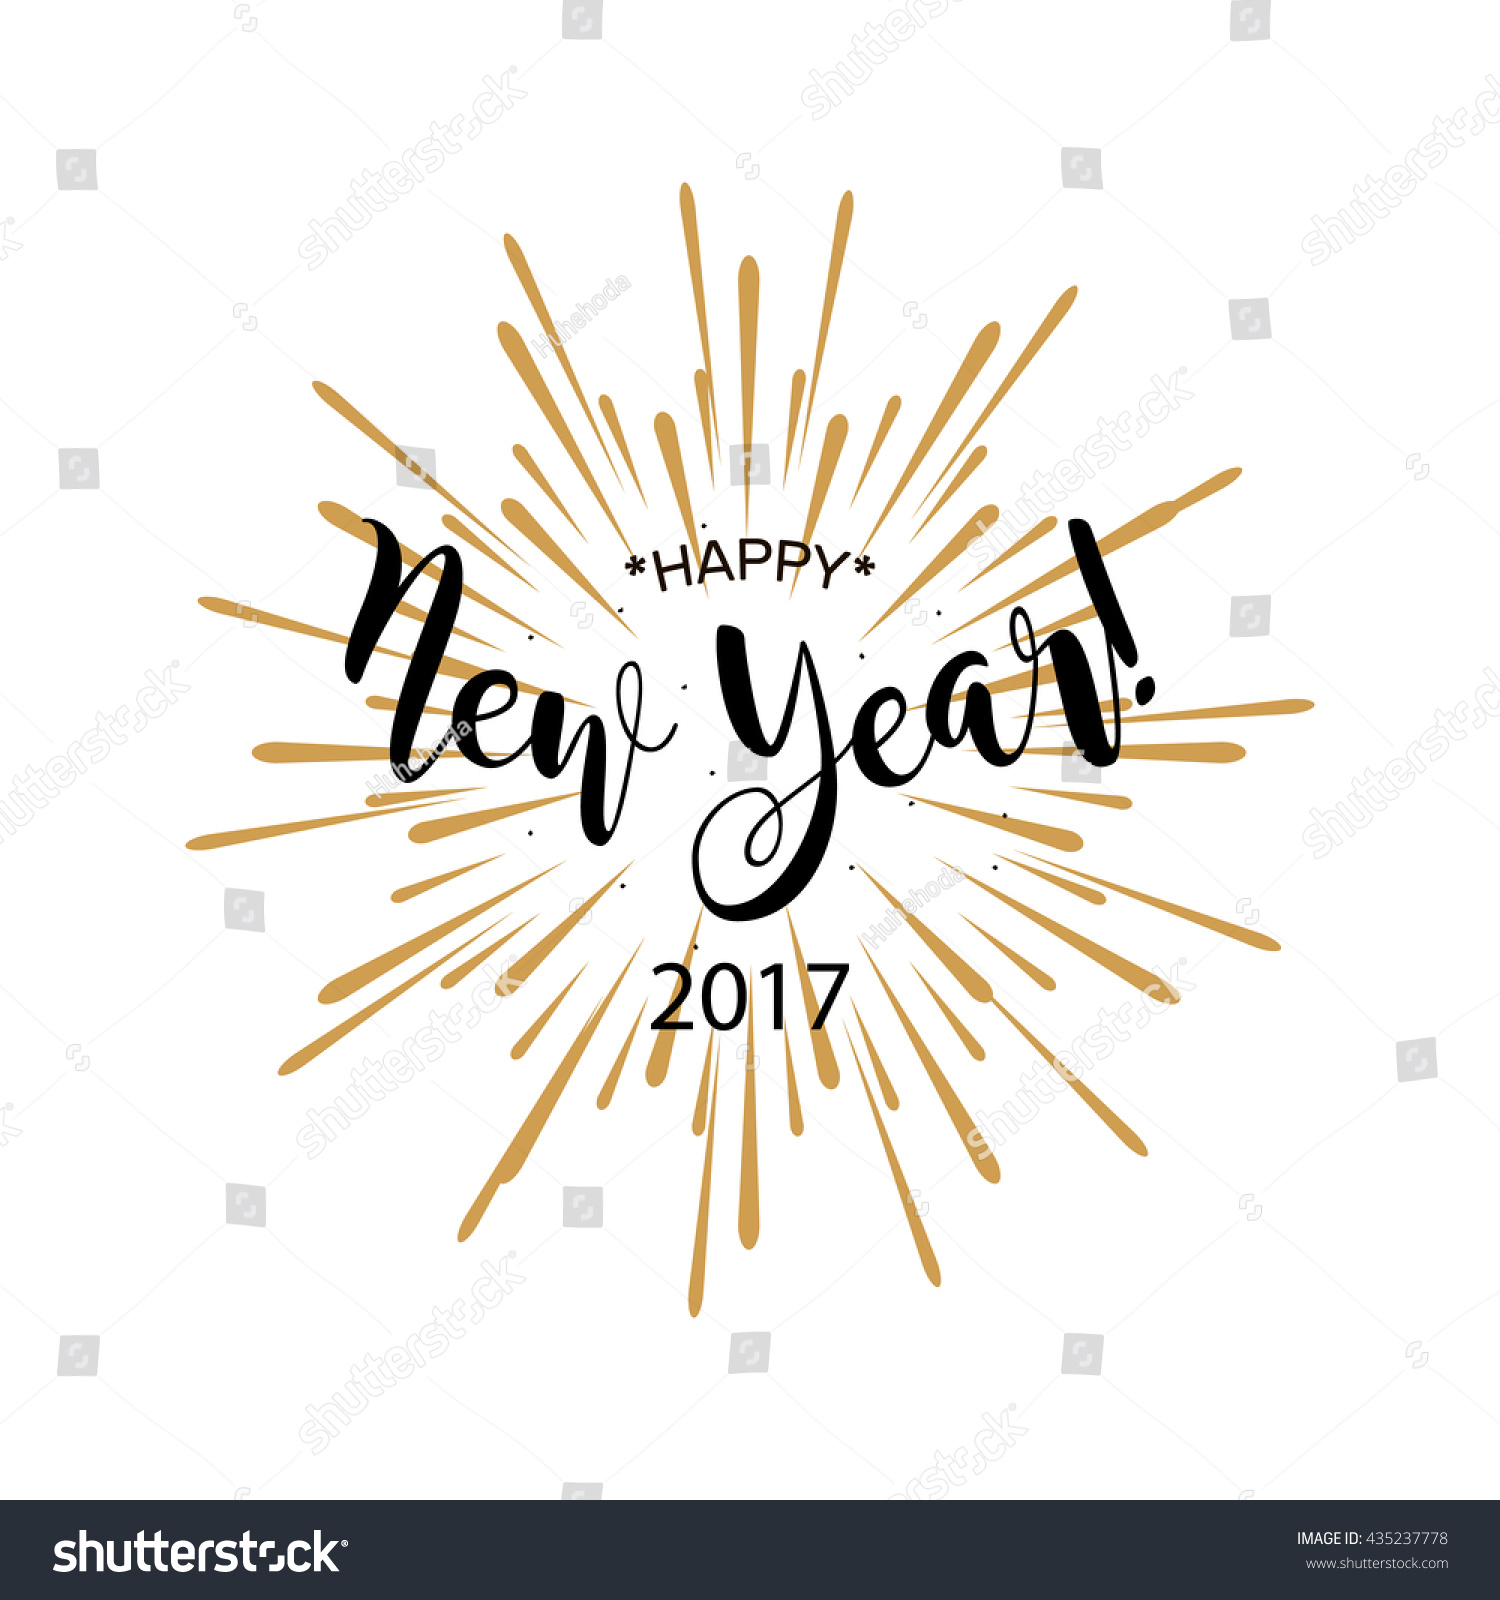 Happy New Year 2017 Beautiful Greeting Stock Vector (Royalty Free ...